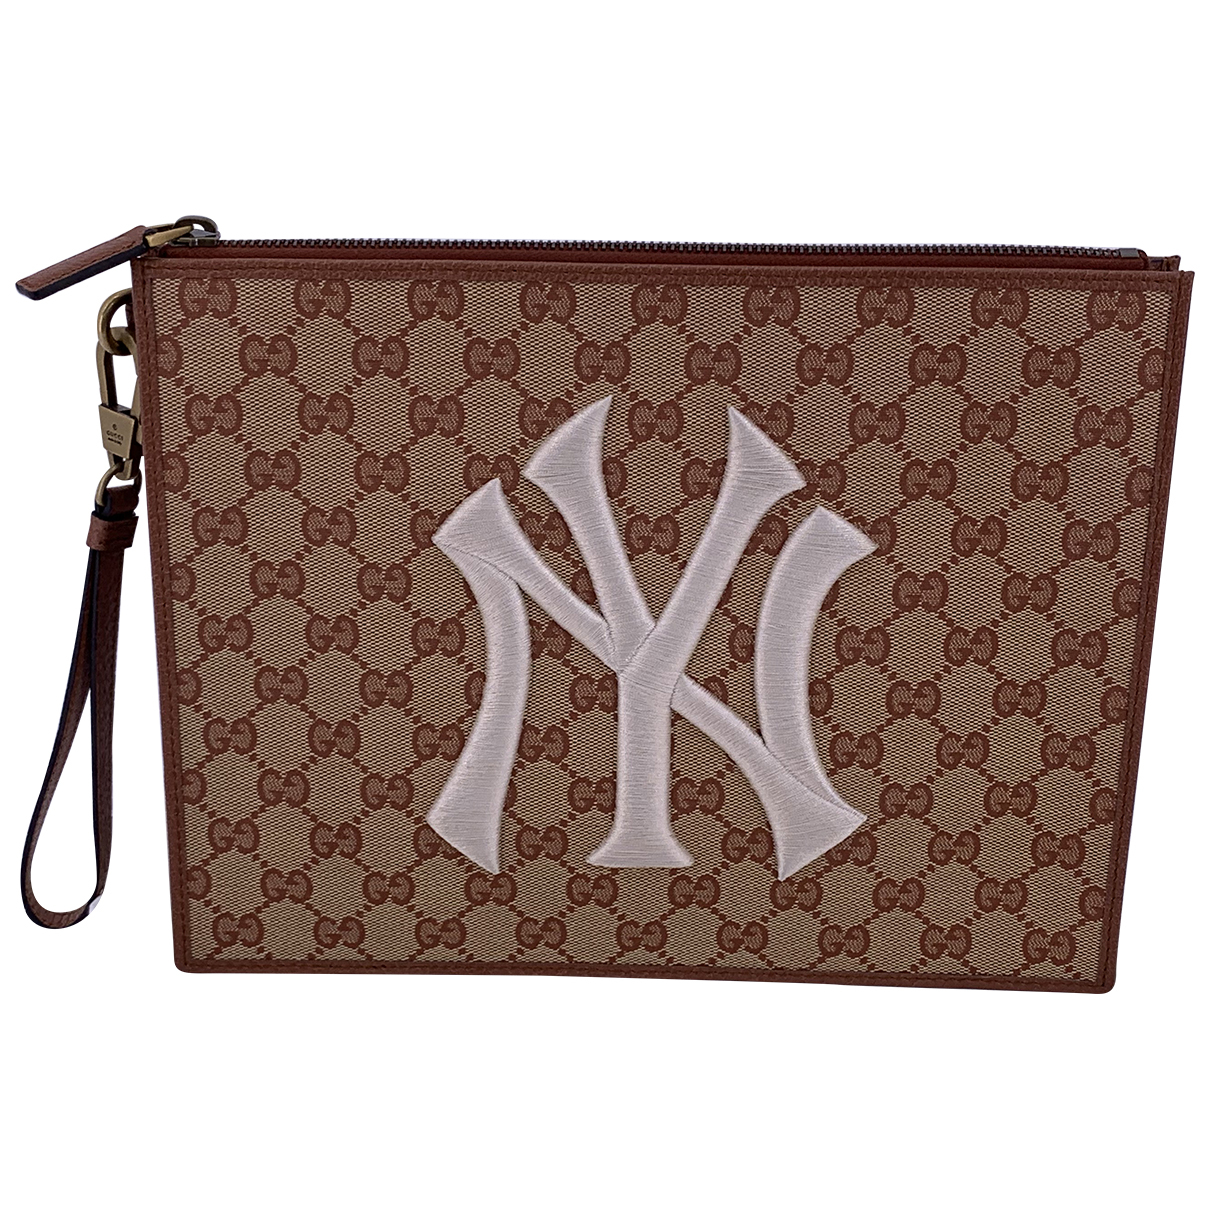 Gucci N Beige Cloth Small bag, wallet & cases for Men N